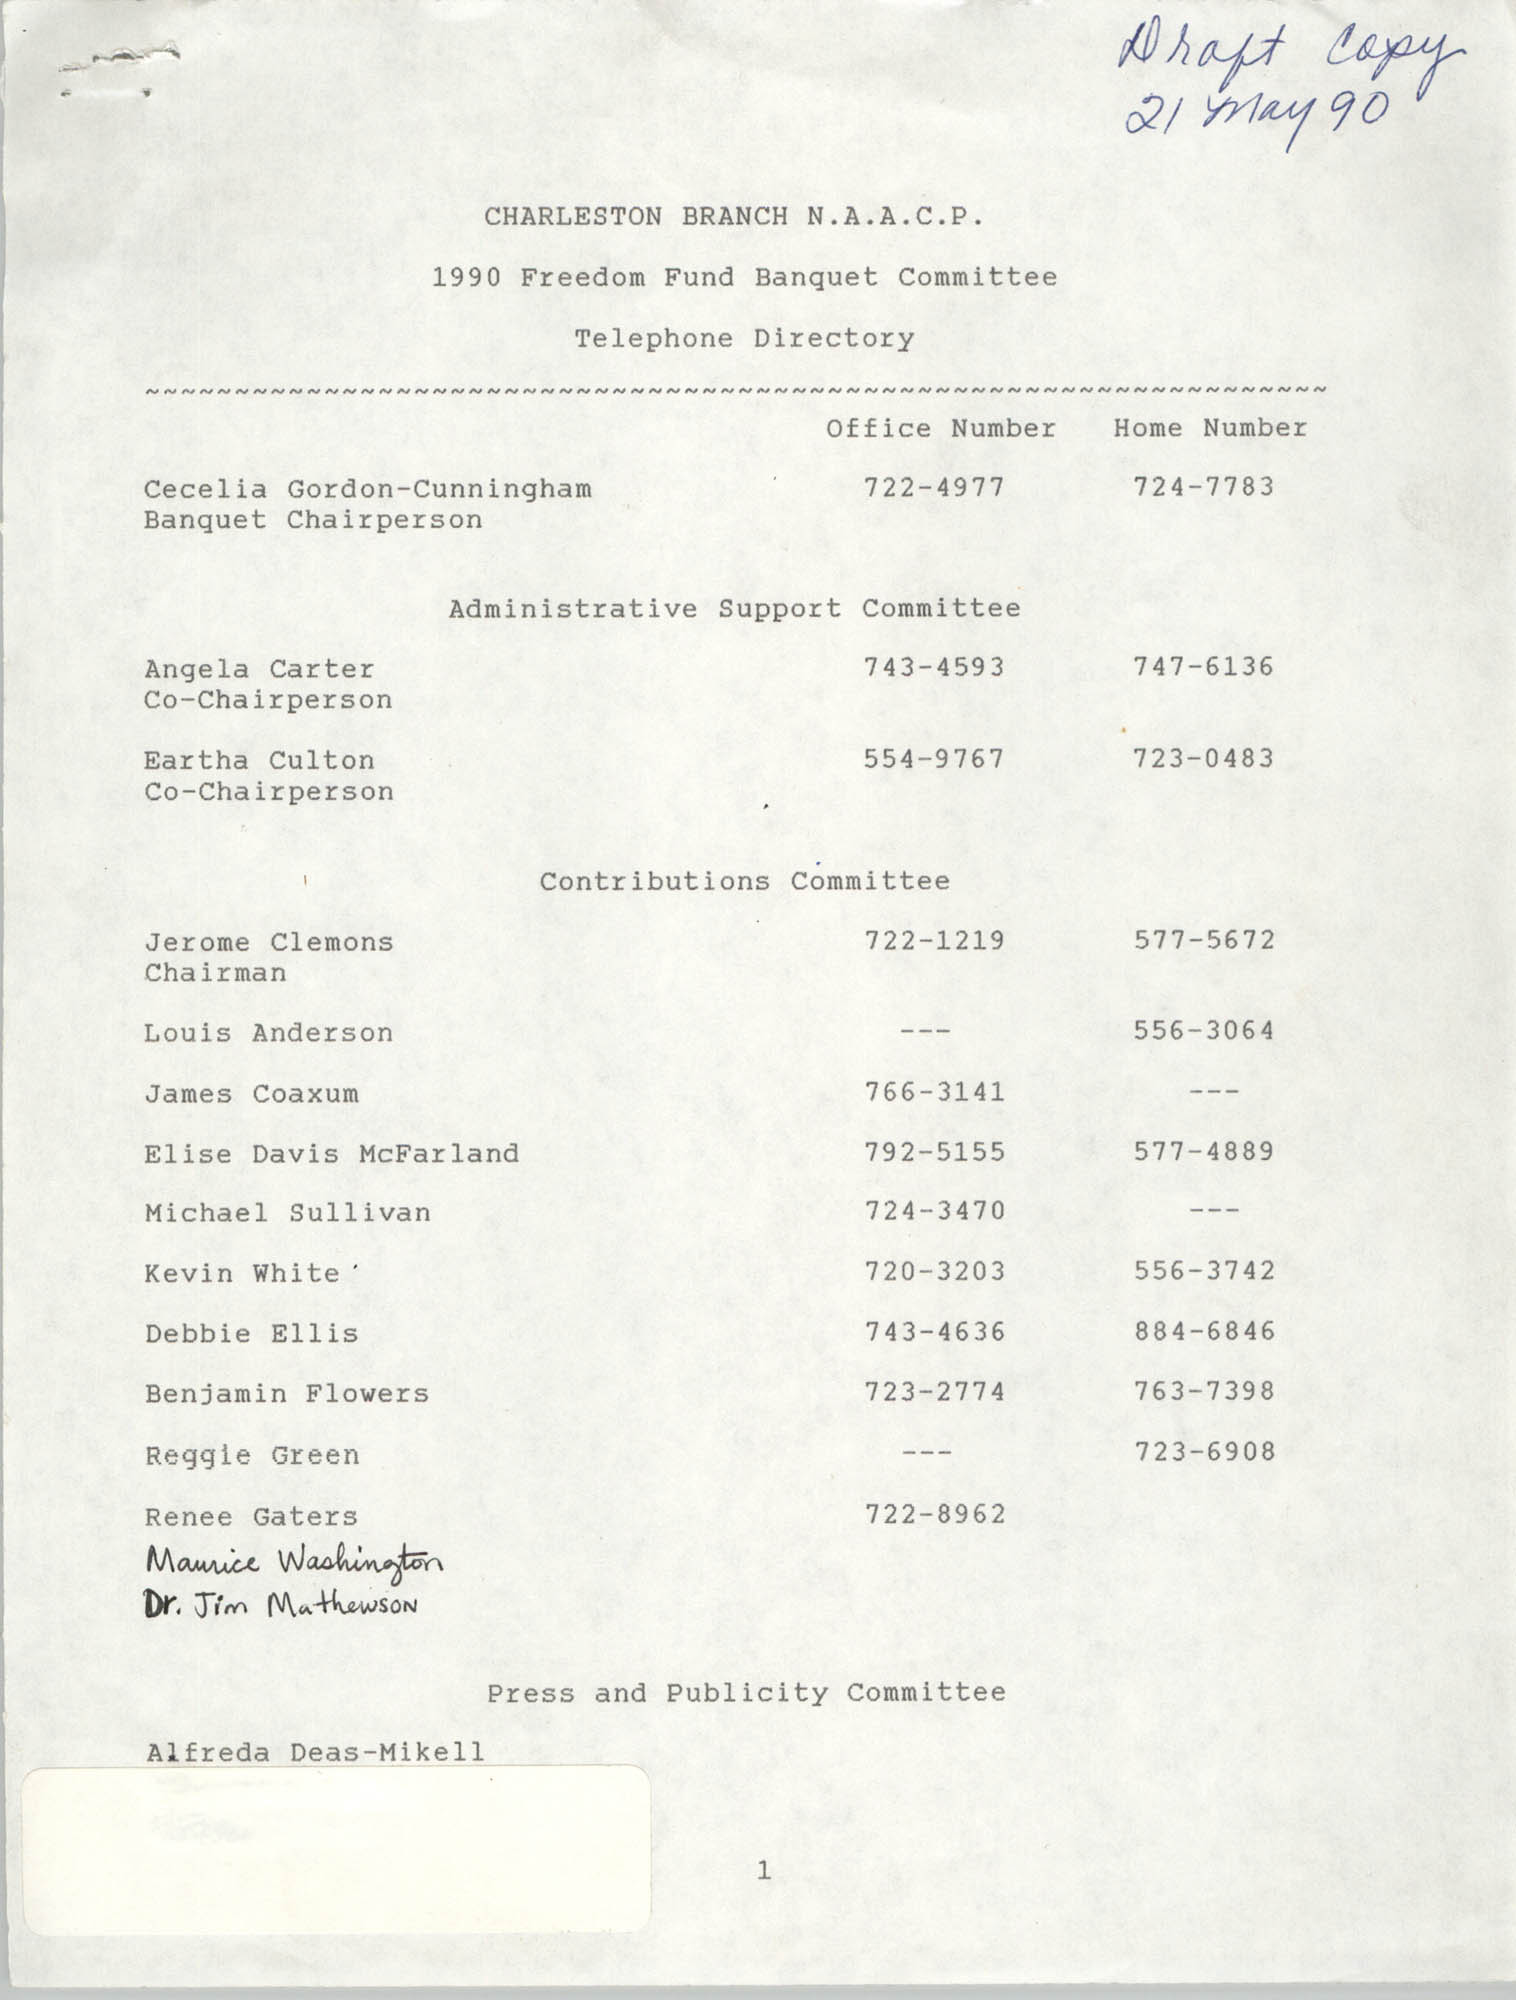 Draft, Telephone Directory, 1990 Freedom Fund Banquet Committee, Charleston Branch of the NAACP, May 21, 1990